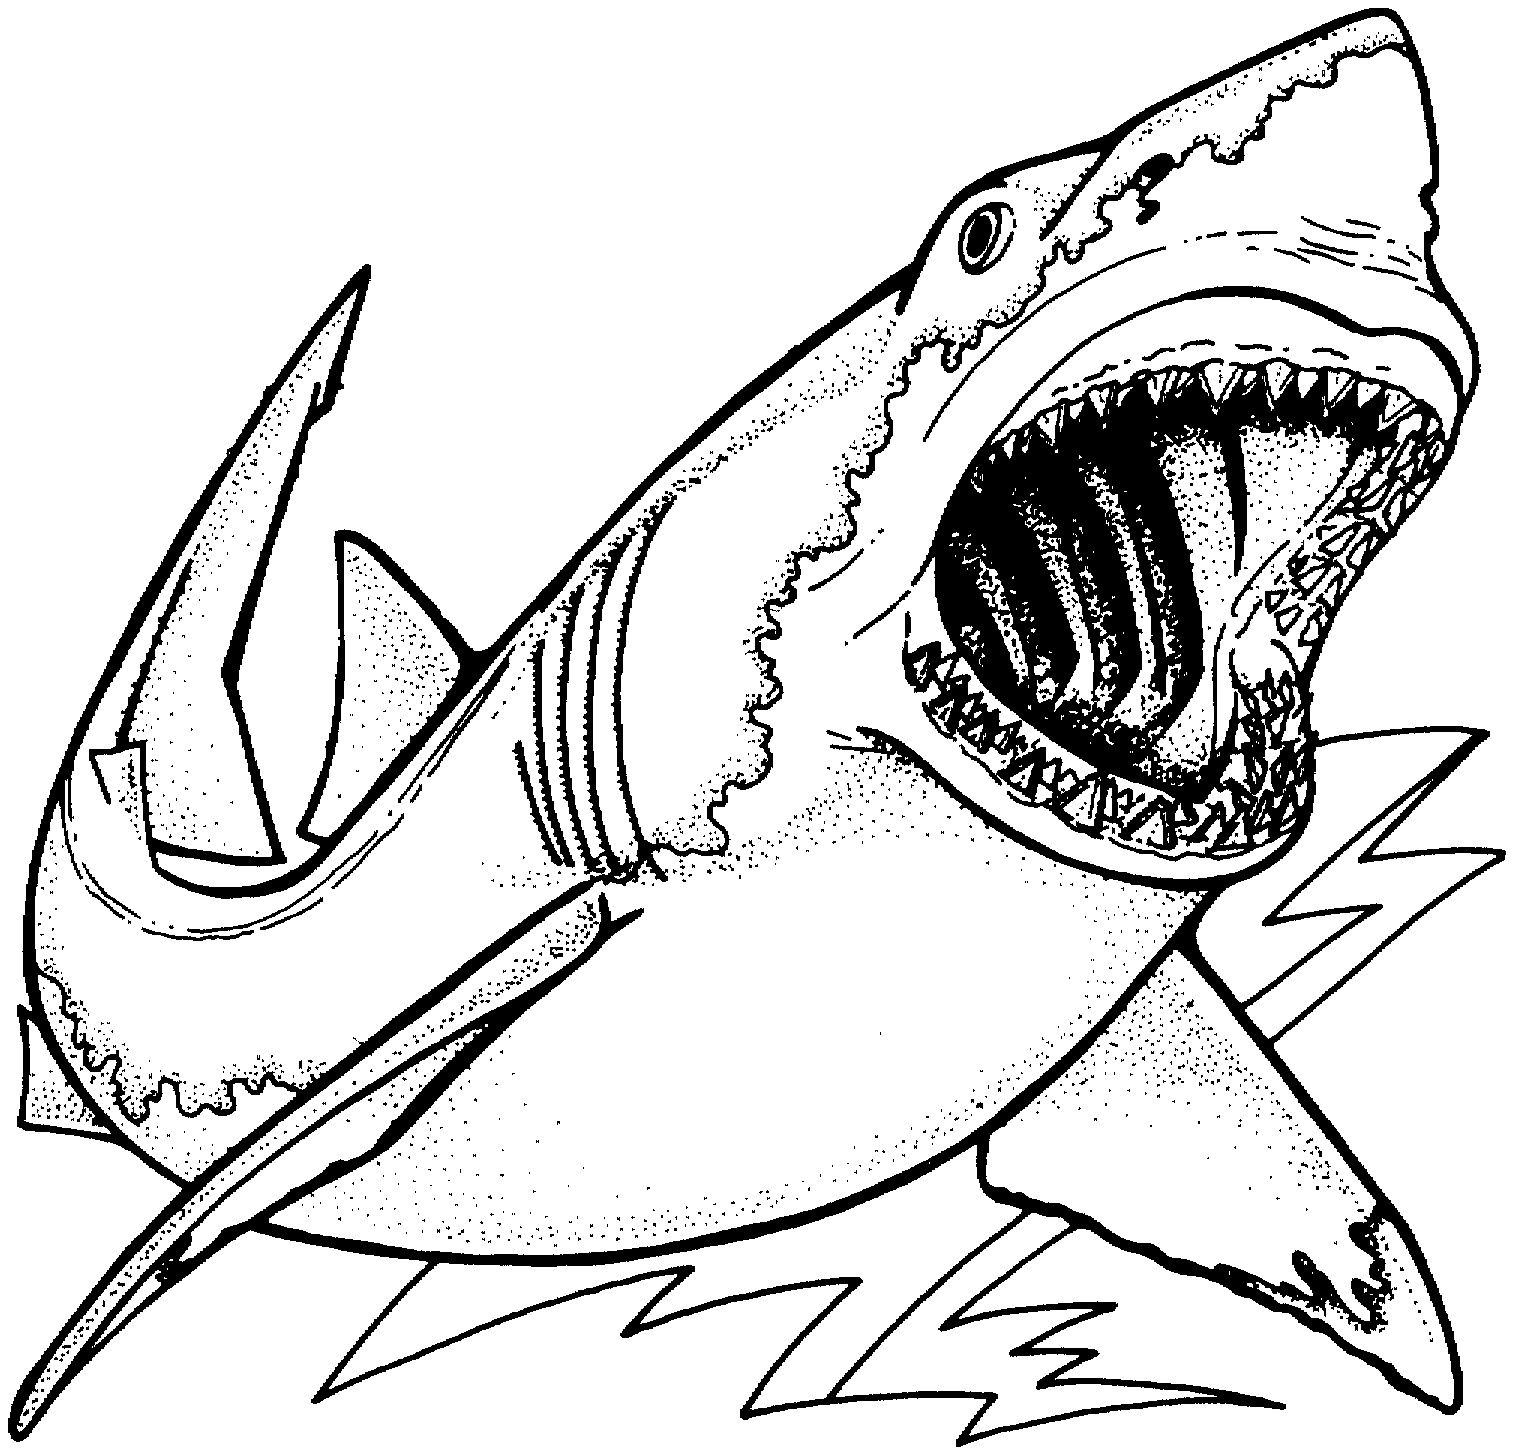 Cool Coloring Pages Free Http Www Wallpaperartdesignhd Us Cool Coloring Pages Free 48670 Shark Coloring Pages Animal Coloring Pages Cool Coloring Pages